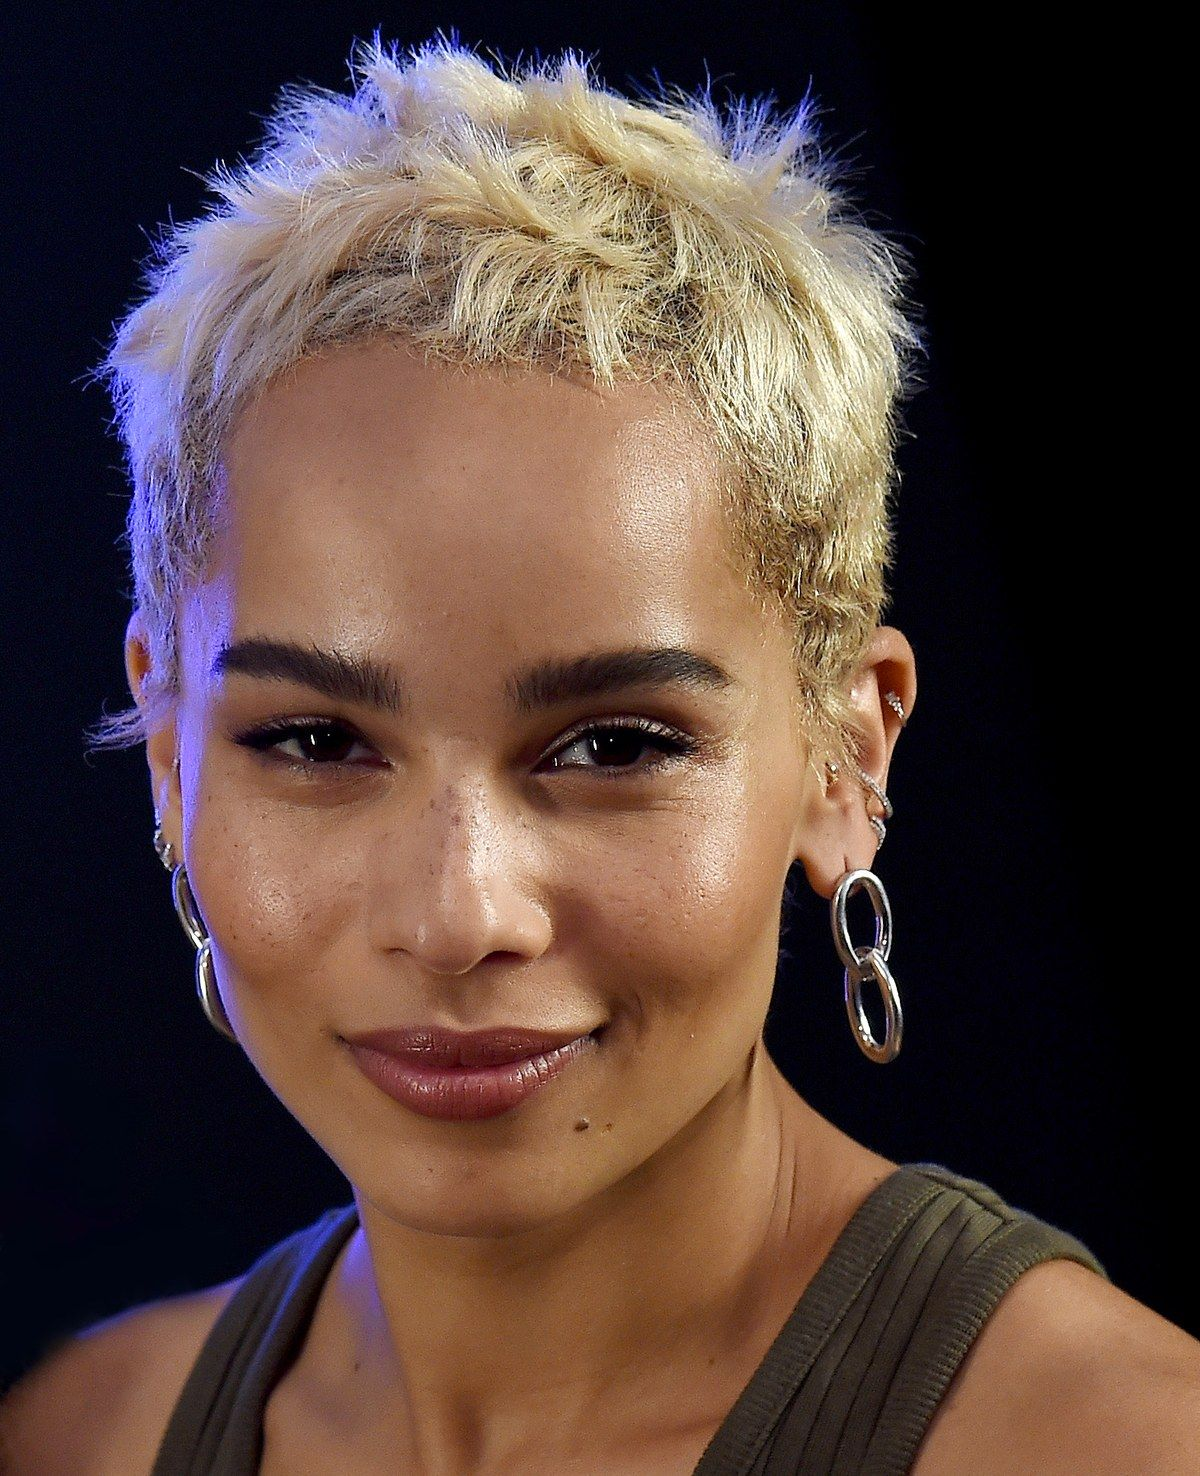 Coiffure Zoe Kravitz Super Short And Super Blonde Seems To Be The Combo Trend